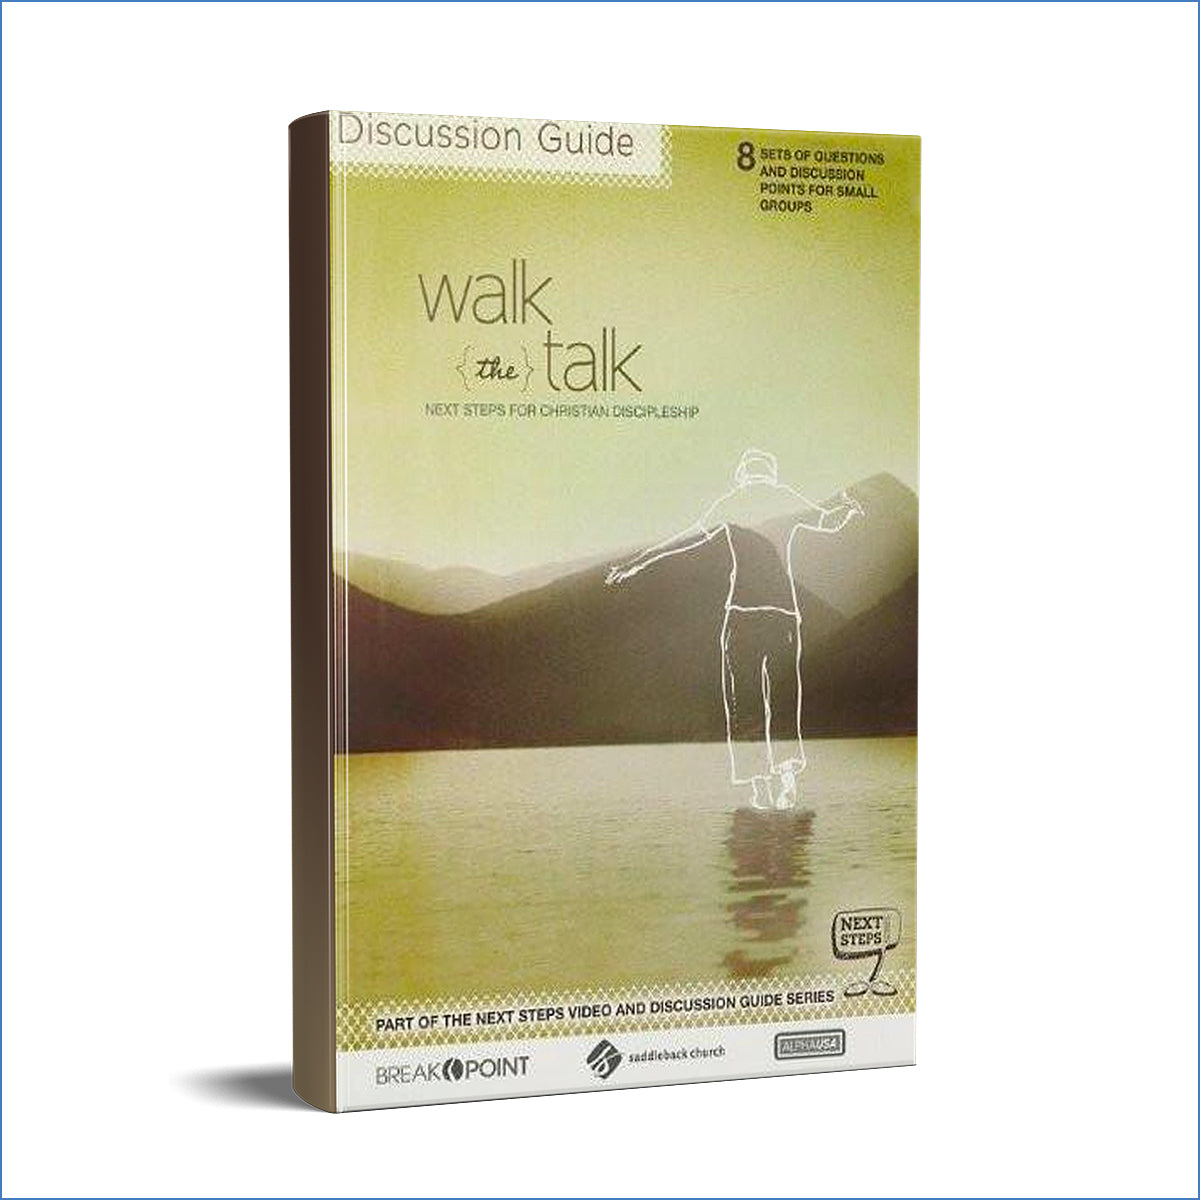 Walk the Talk: Discussion Guide